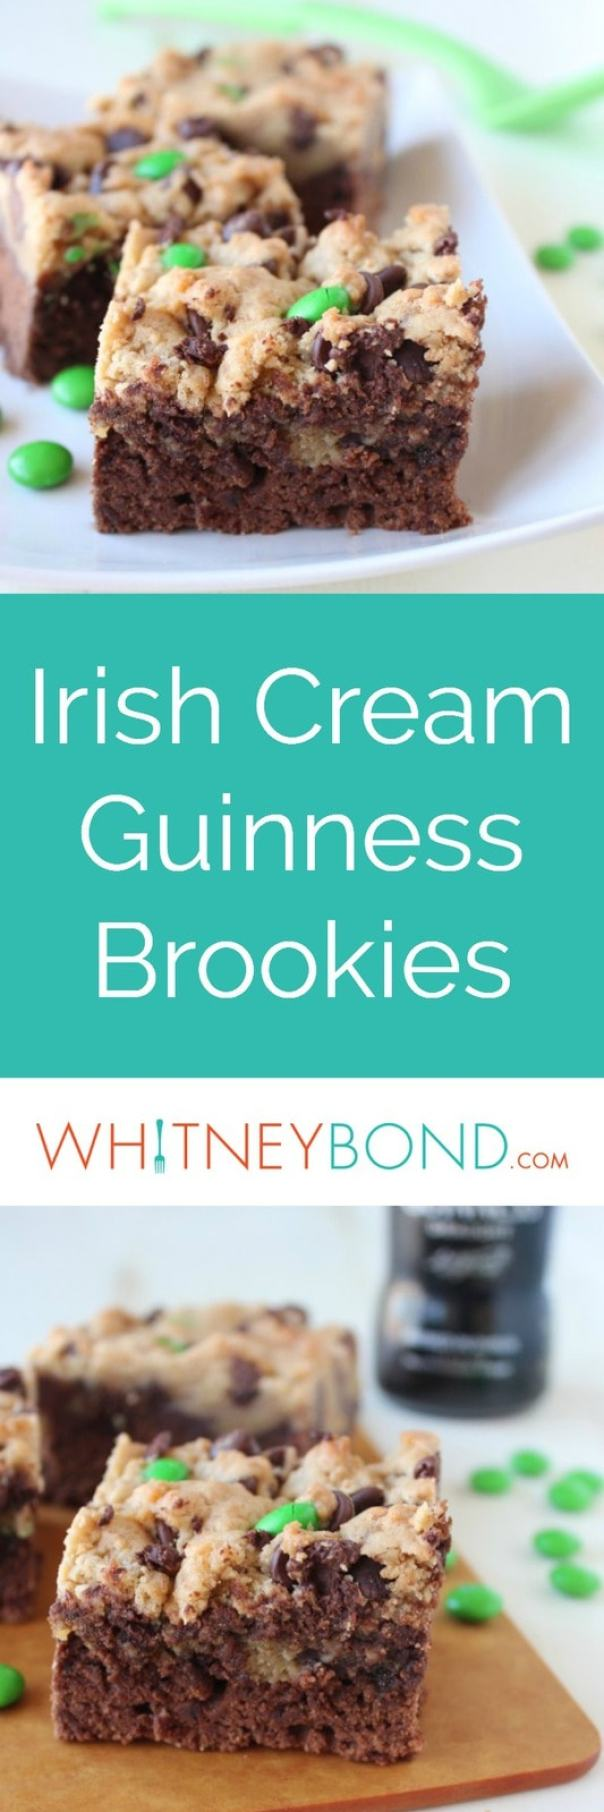 Irish Cream Guinness Brookies are made up of a layer of Guinness Brownies, topped with a layer of Irish Cream Chocolate Chip Cookie Dough, perfect for St Patricks Day!